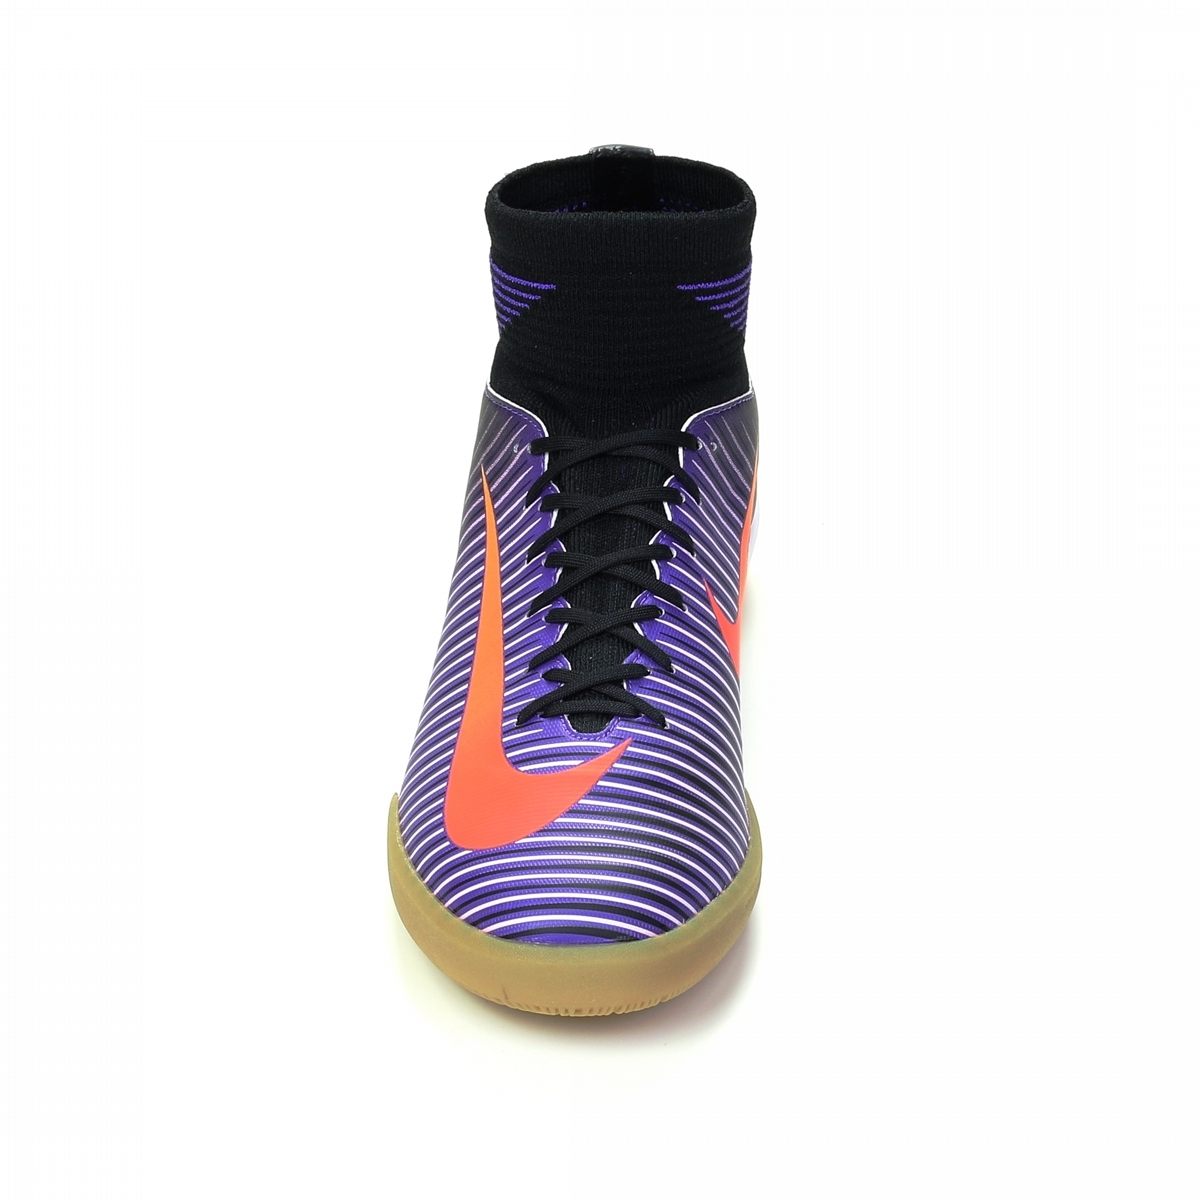 9e614842c Nike Youth MercurialX Proximo II IC Indoor Soccer Shoes (Black Total  Crimson Hyper Grape)